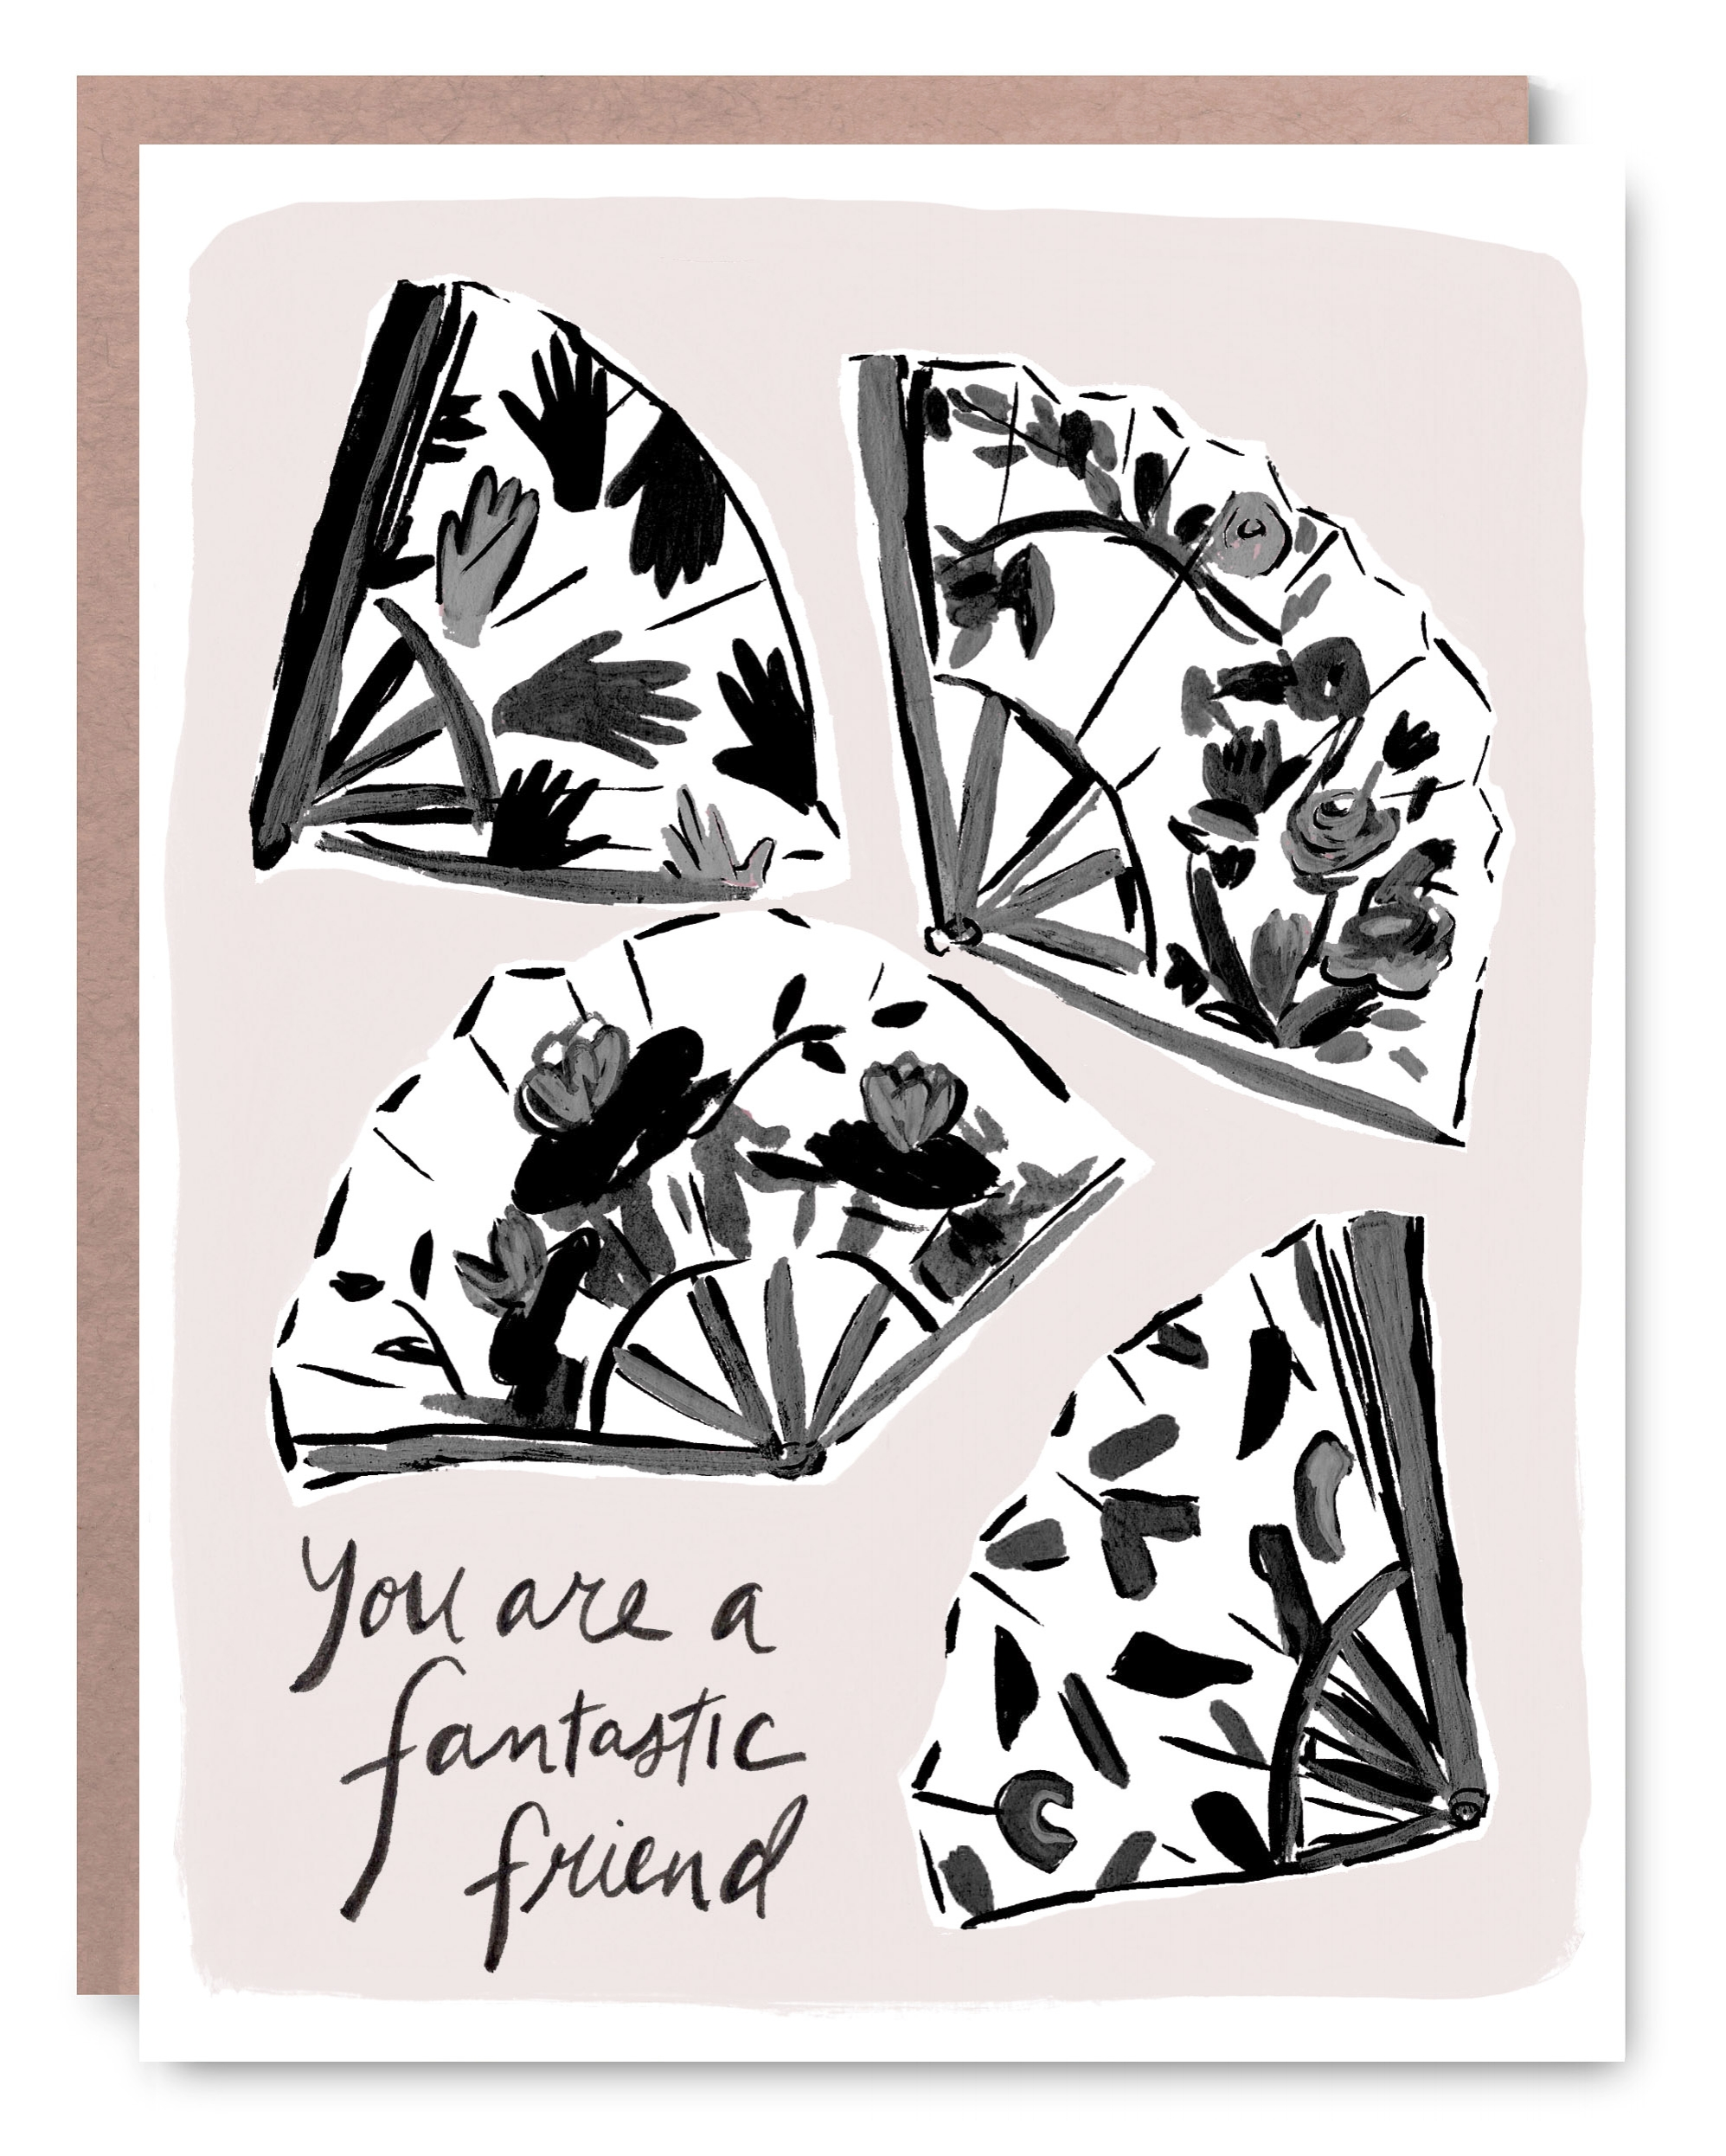 Fantastic Friend - Blank inside - 4.25 x 5.5""